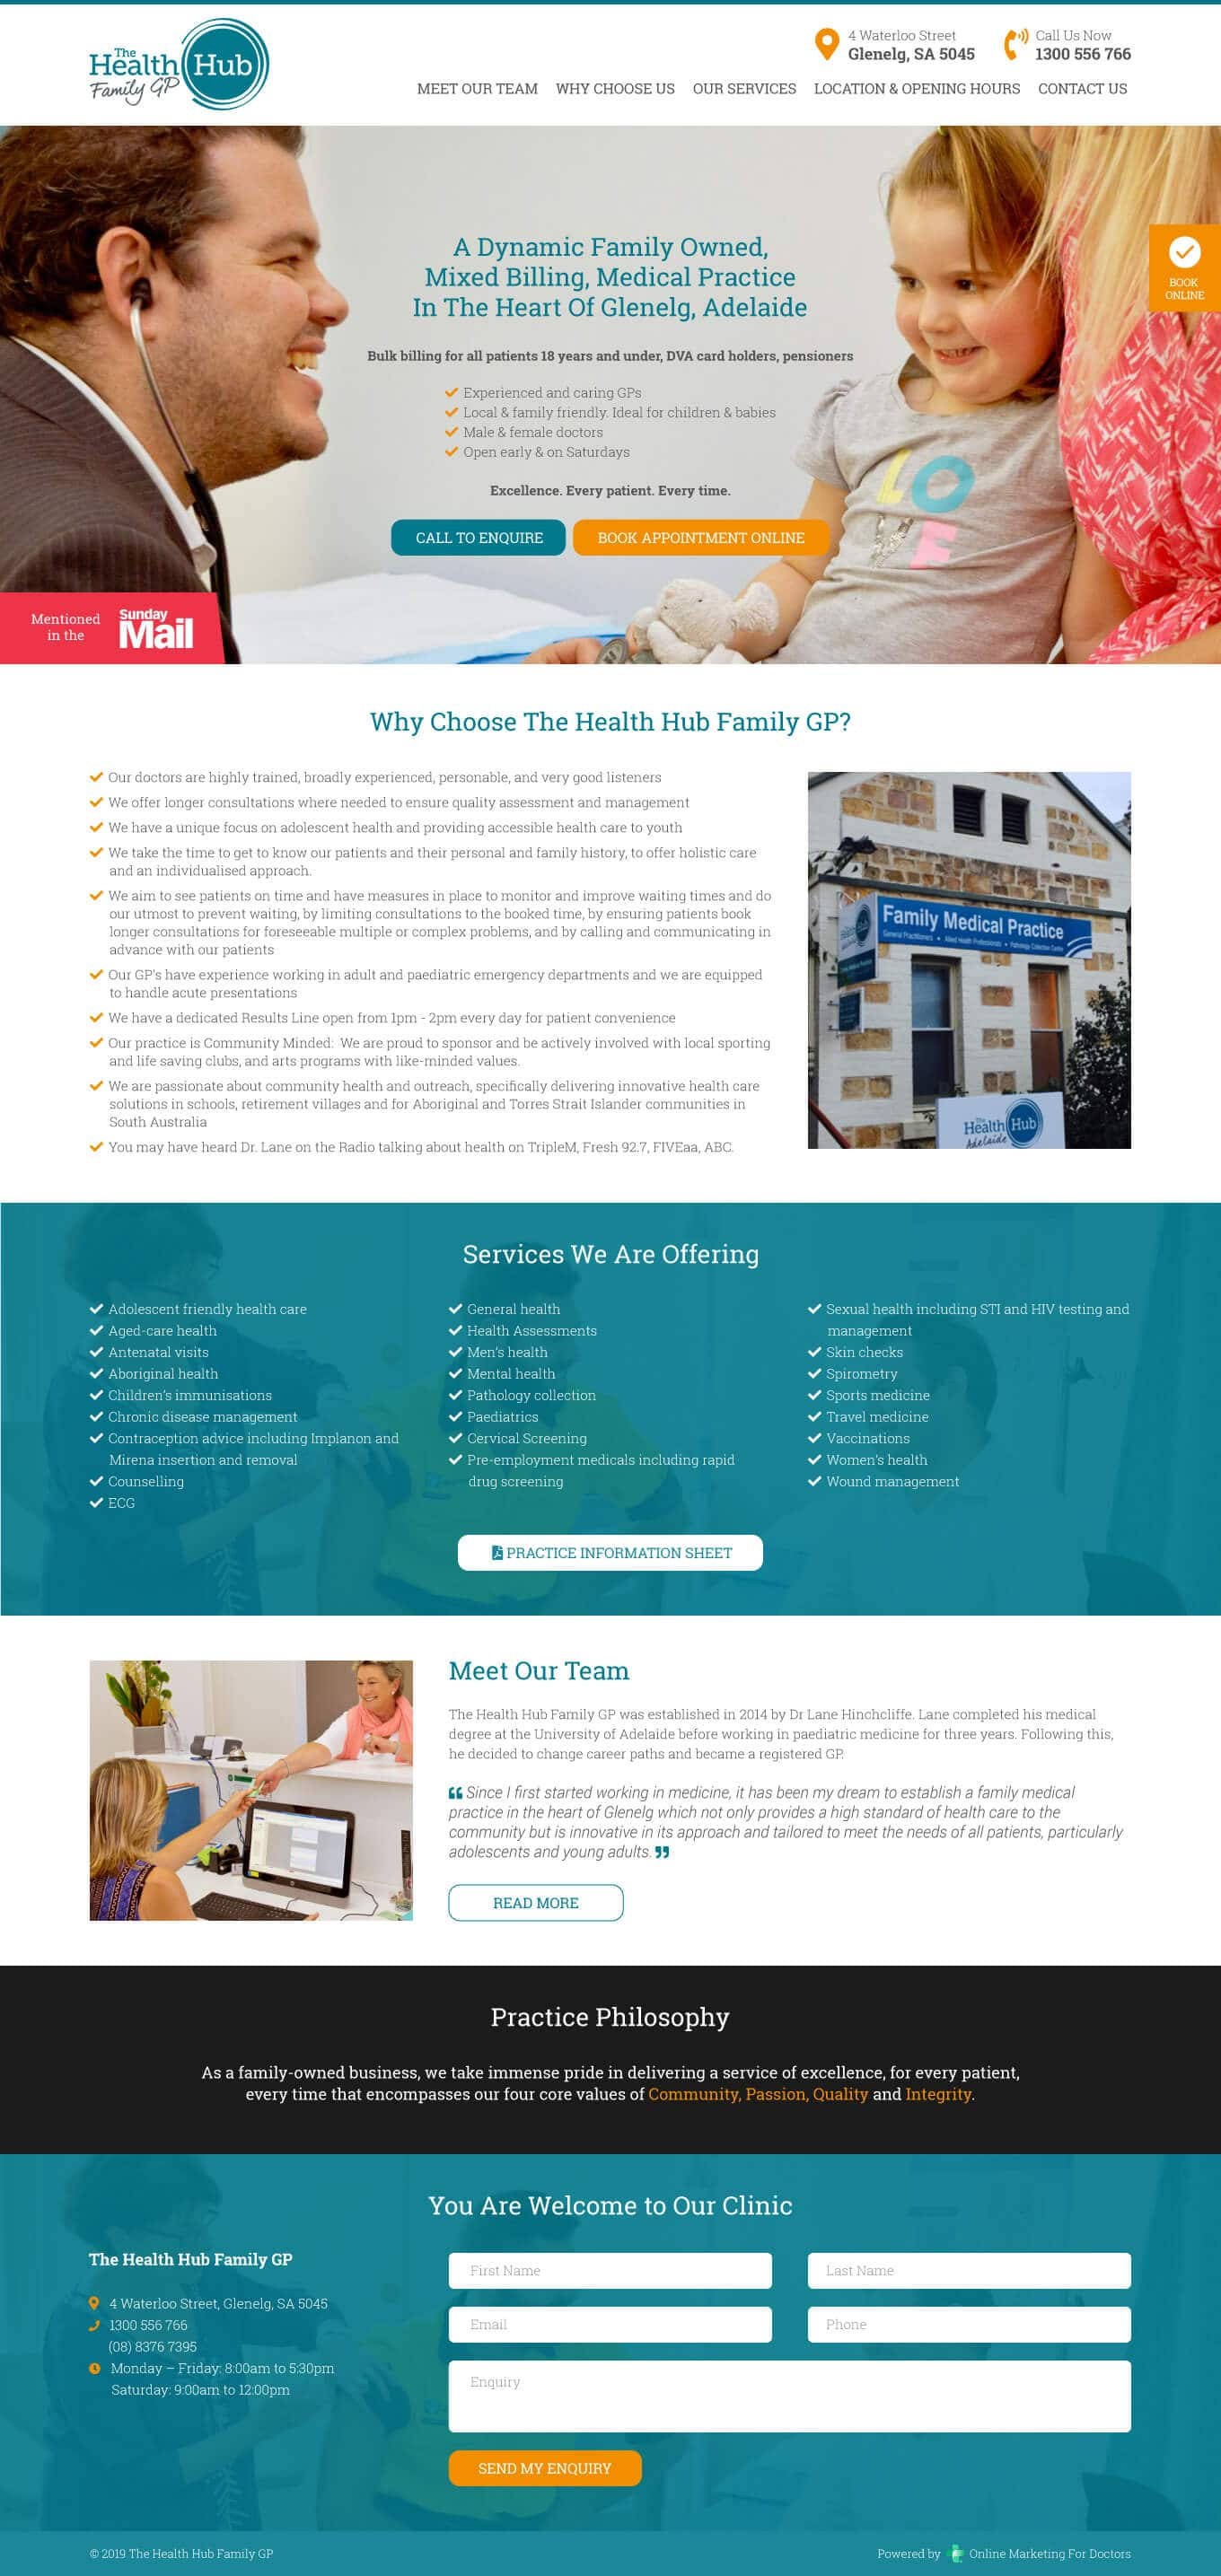 The Family Health Hub